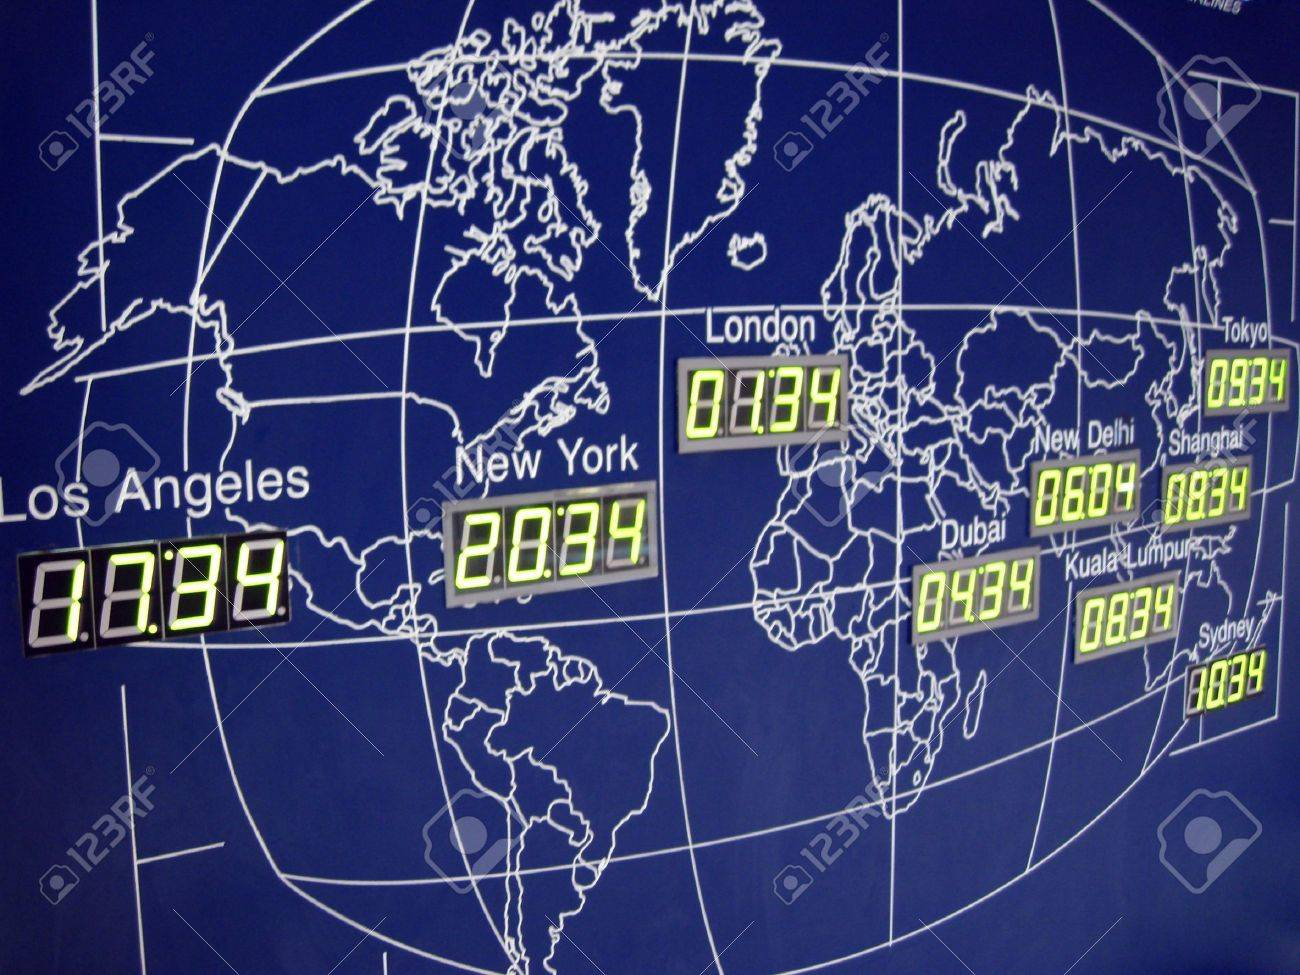 A world map with digital clock in kuala lumpur international a world map with digital clock in kuala lumpur international airport stock photo 3376942 gumiabroncs Gallery